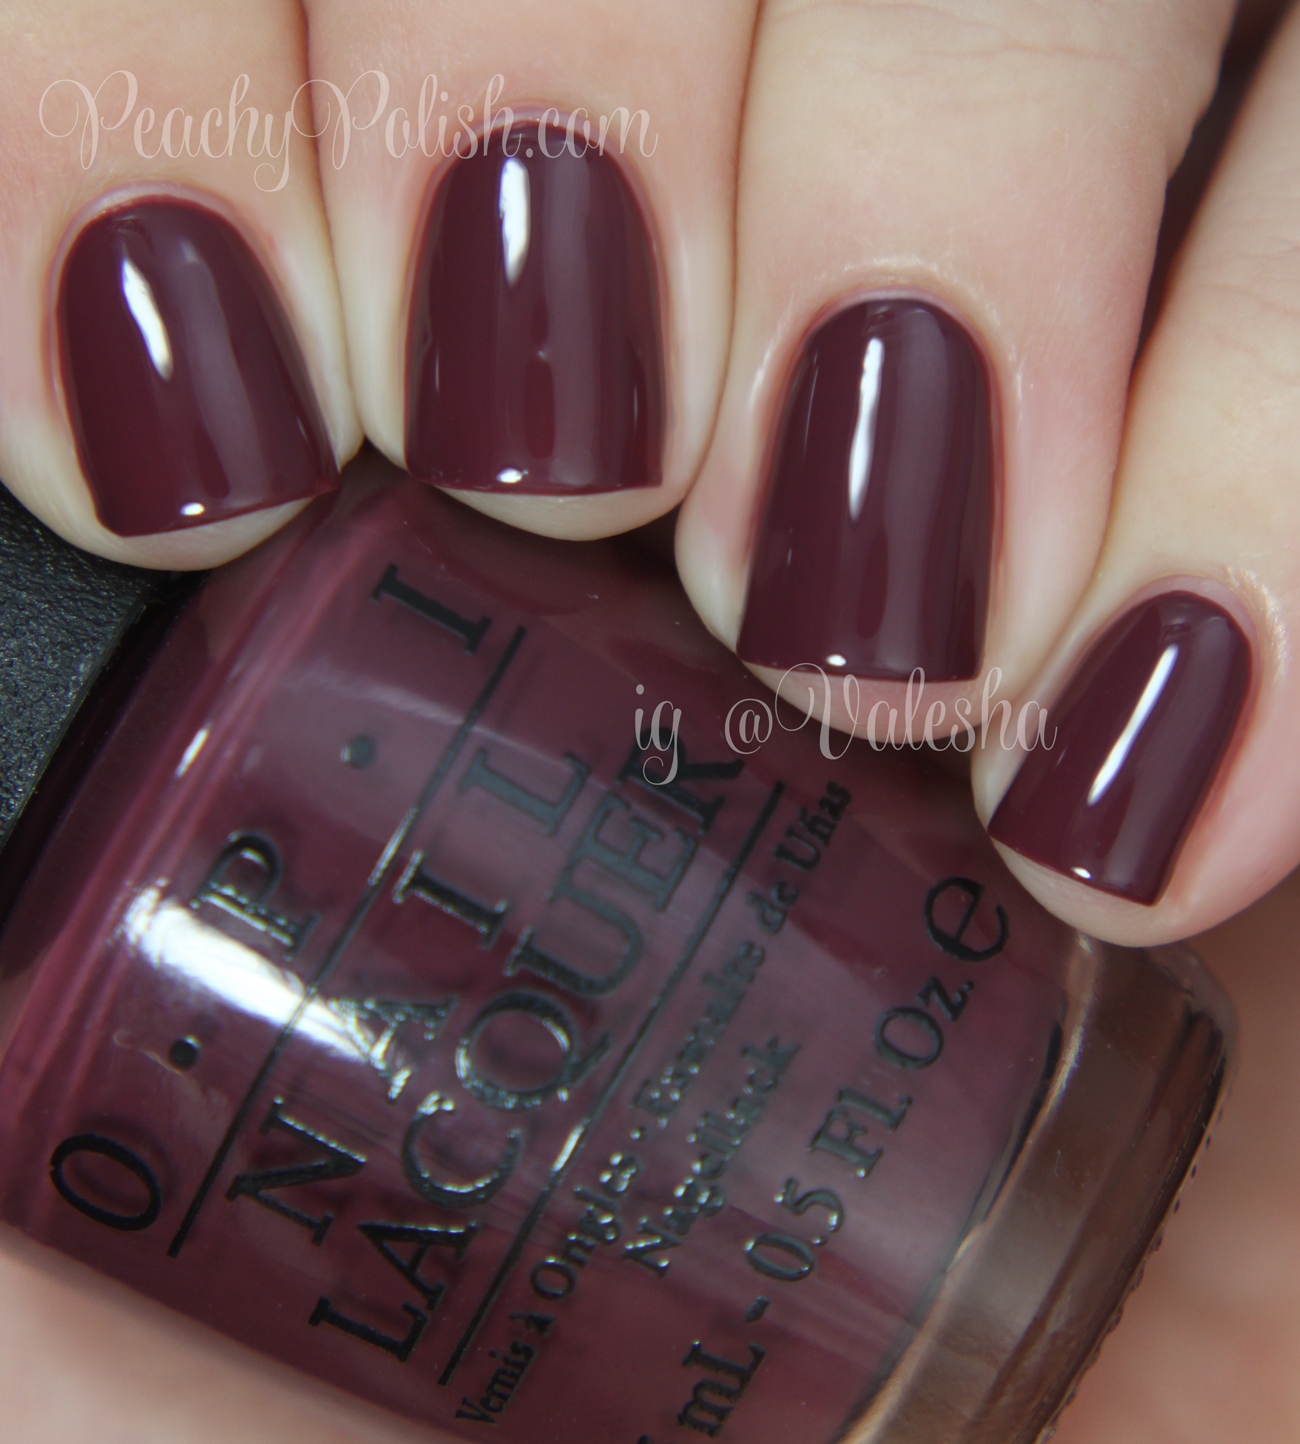 OPI, Brazil Collection: OPI Scores A Goal! | nails | Pinterest | OPI ...